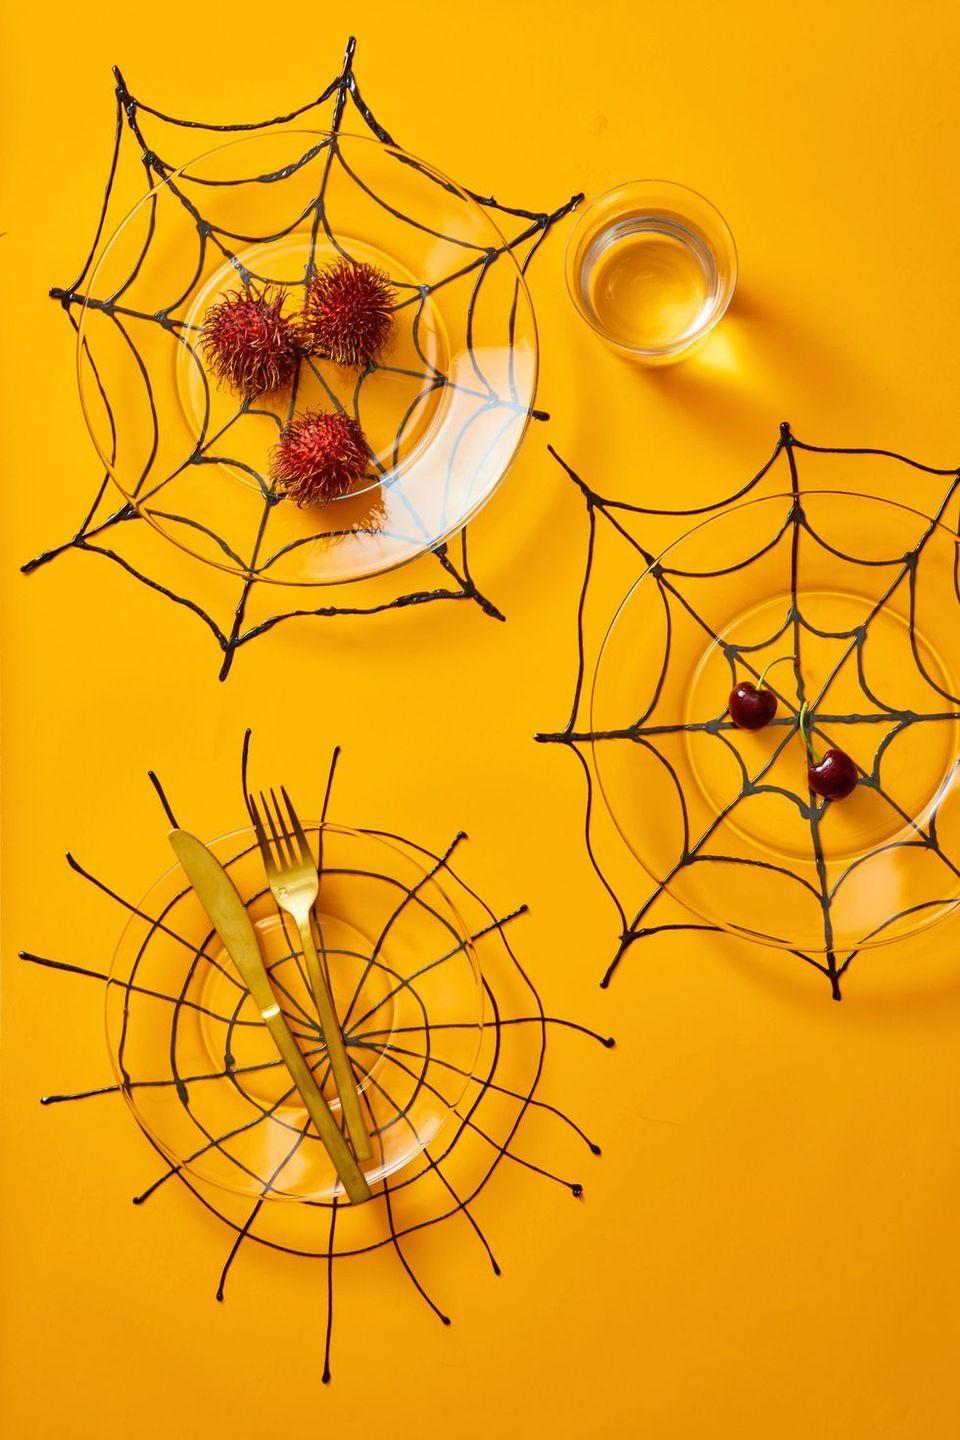 """<p>Make spider web placemats, which can be made from parchment paper and puff paint, part of your centerpiece. Use the puff paint to create a web shape on the parchment paper. Once it dries overnight, peel the paper off the back. You can then place them under clear plates and rest pumpkins, flowers, or desserts on top for a creative centerpiece. </p><p><a class=""""link rapid-noclick-resp"""" href=""""https://go.redirectingat.com?id=74968X1596630&url=https%3A%2F%2Fwww.michaels.com%2Fpuffy-dimensional-fabric-paint-1.25oz-black%2F10181892.html&sref=https%3A%2F%2Fwww.goodhousekeeping.com%2Fholidays%2Fhalloween-ideas%2Fg33437890%2Fhalloween-table-decorations-centerpieces%2F"""" rel=""""nofollow noopener"""" target=""""_blank"""" data-ylk=""""slk:SHOP PUFF PAINT"""">SHOP PUFF PAINT</a></p>"""